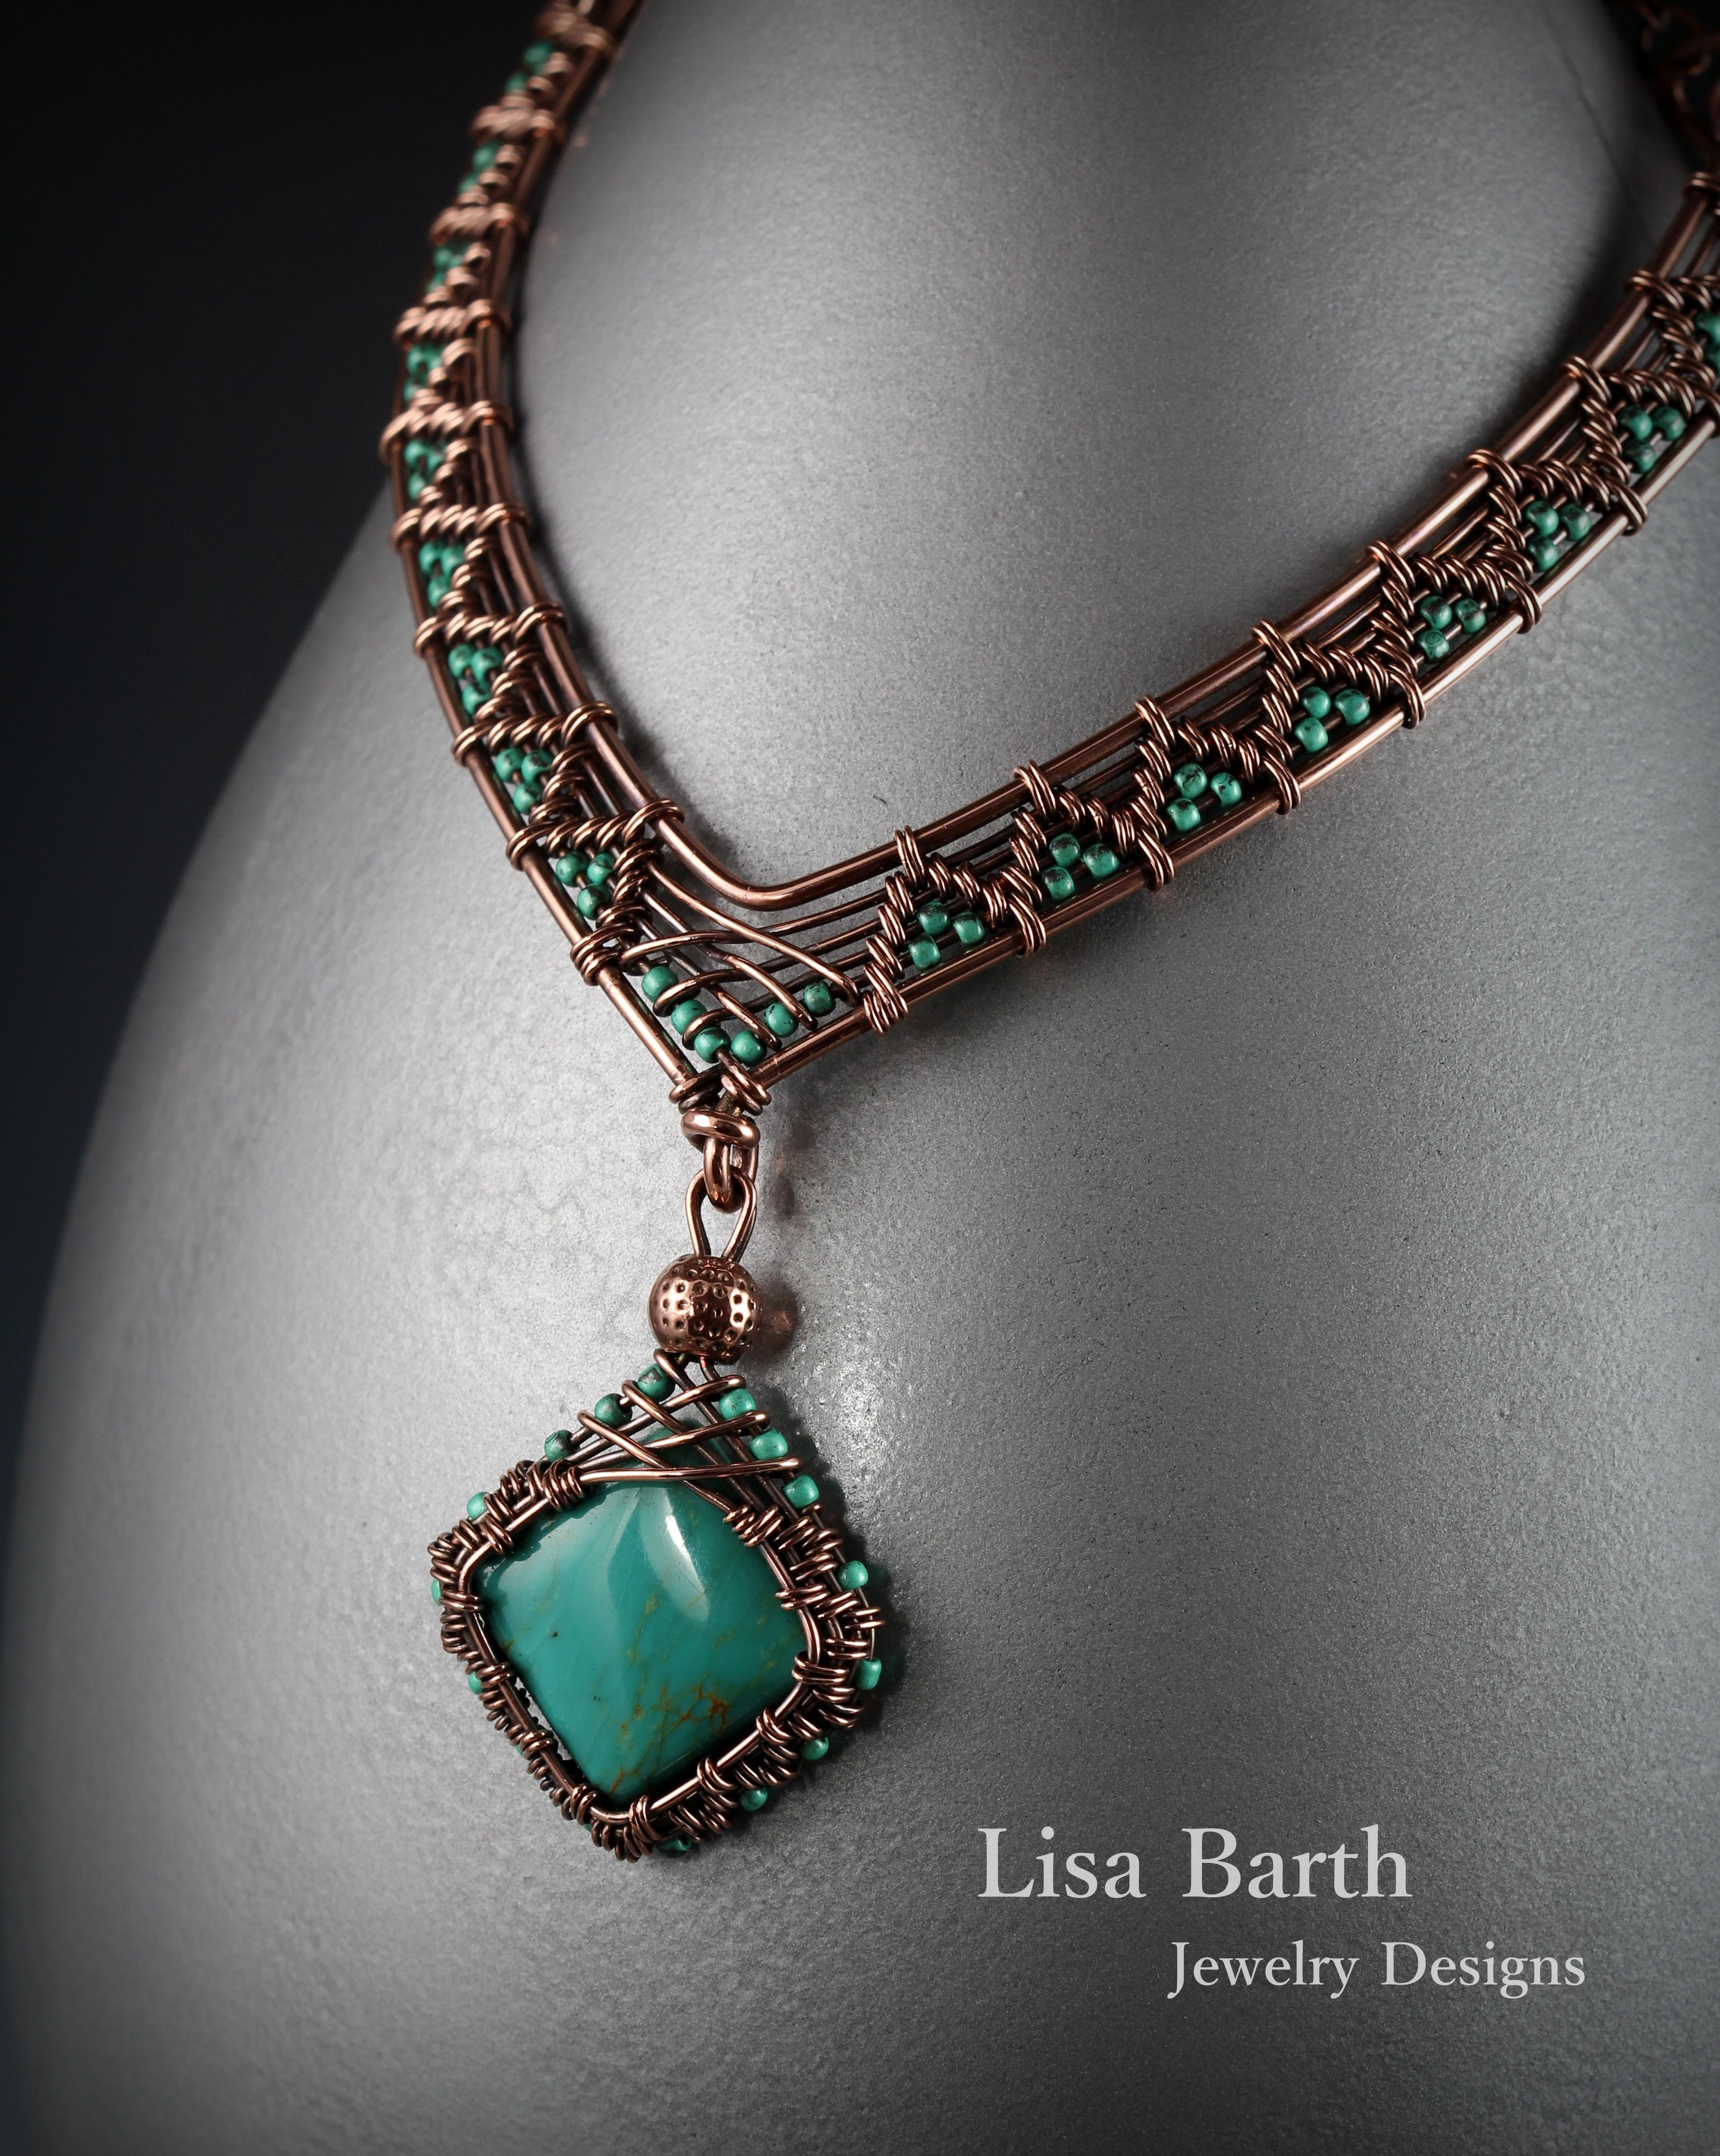 a woven necklace to go with the pendant lisa barth